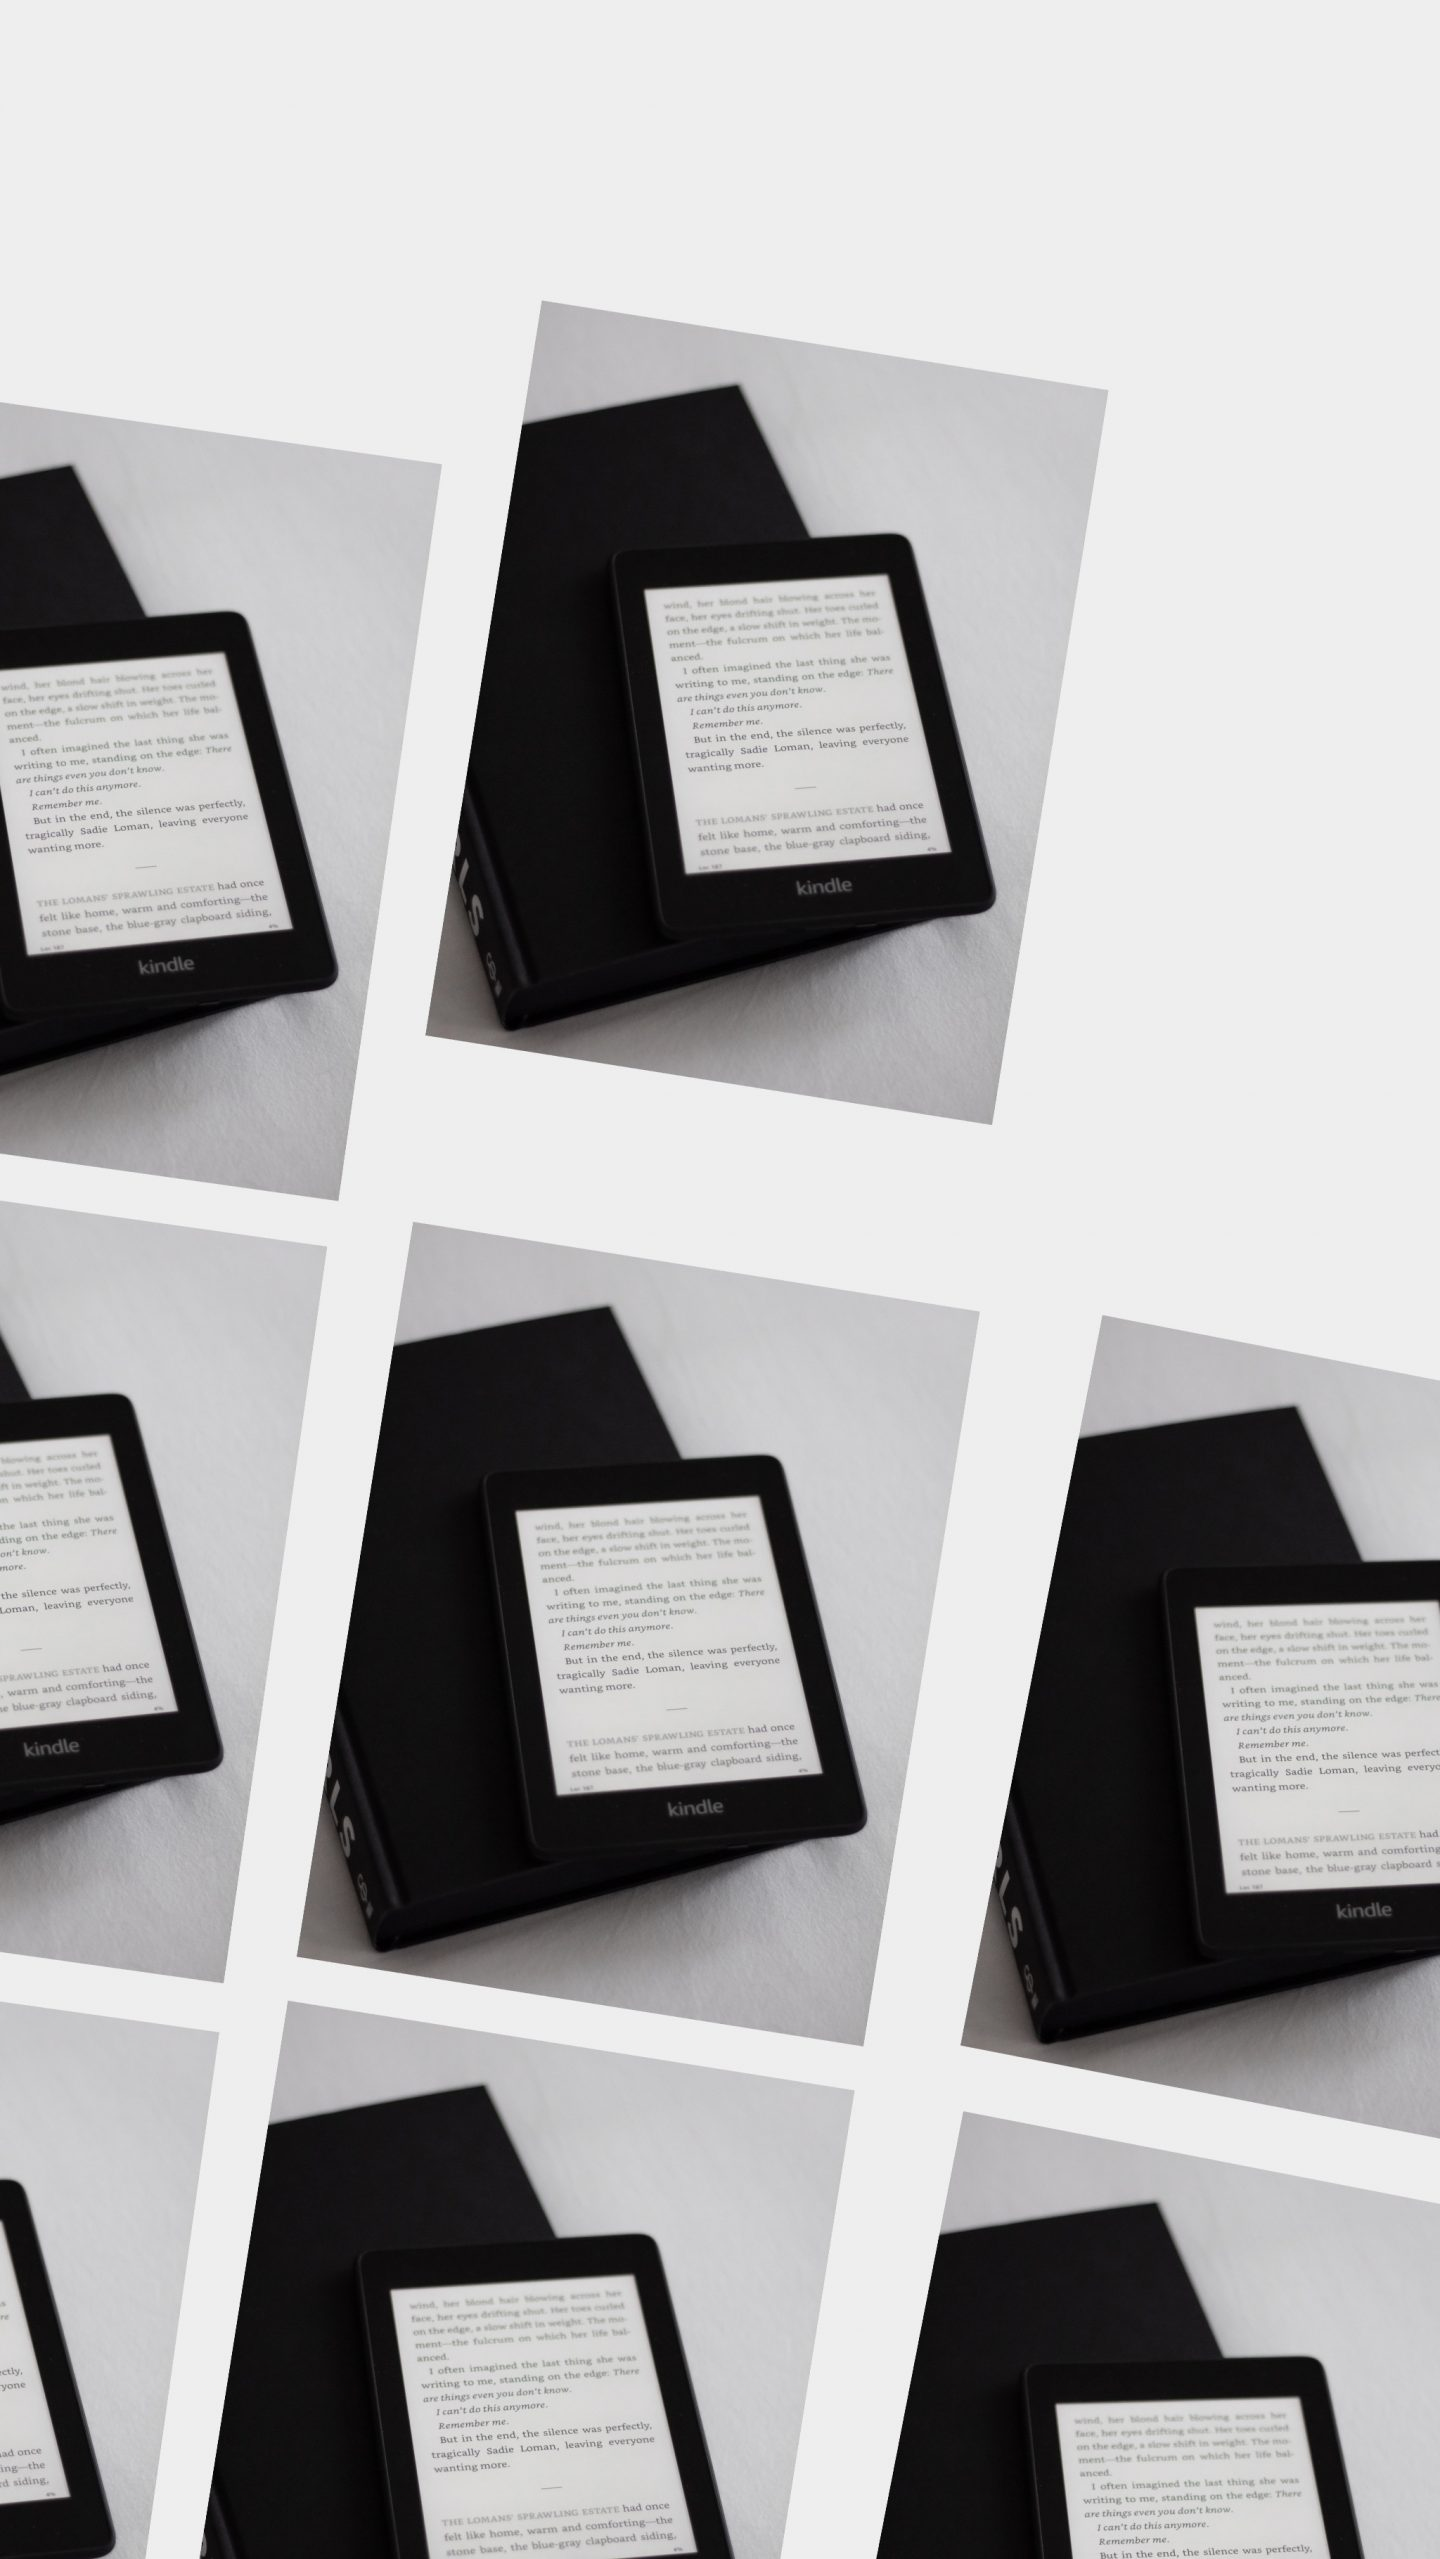 Should you buy a Kindle Paperwhite?